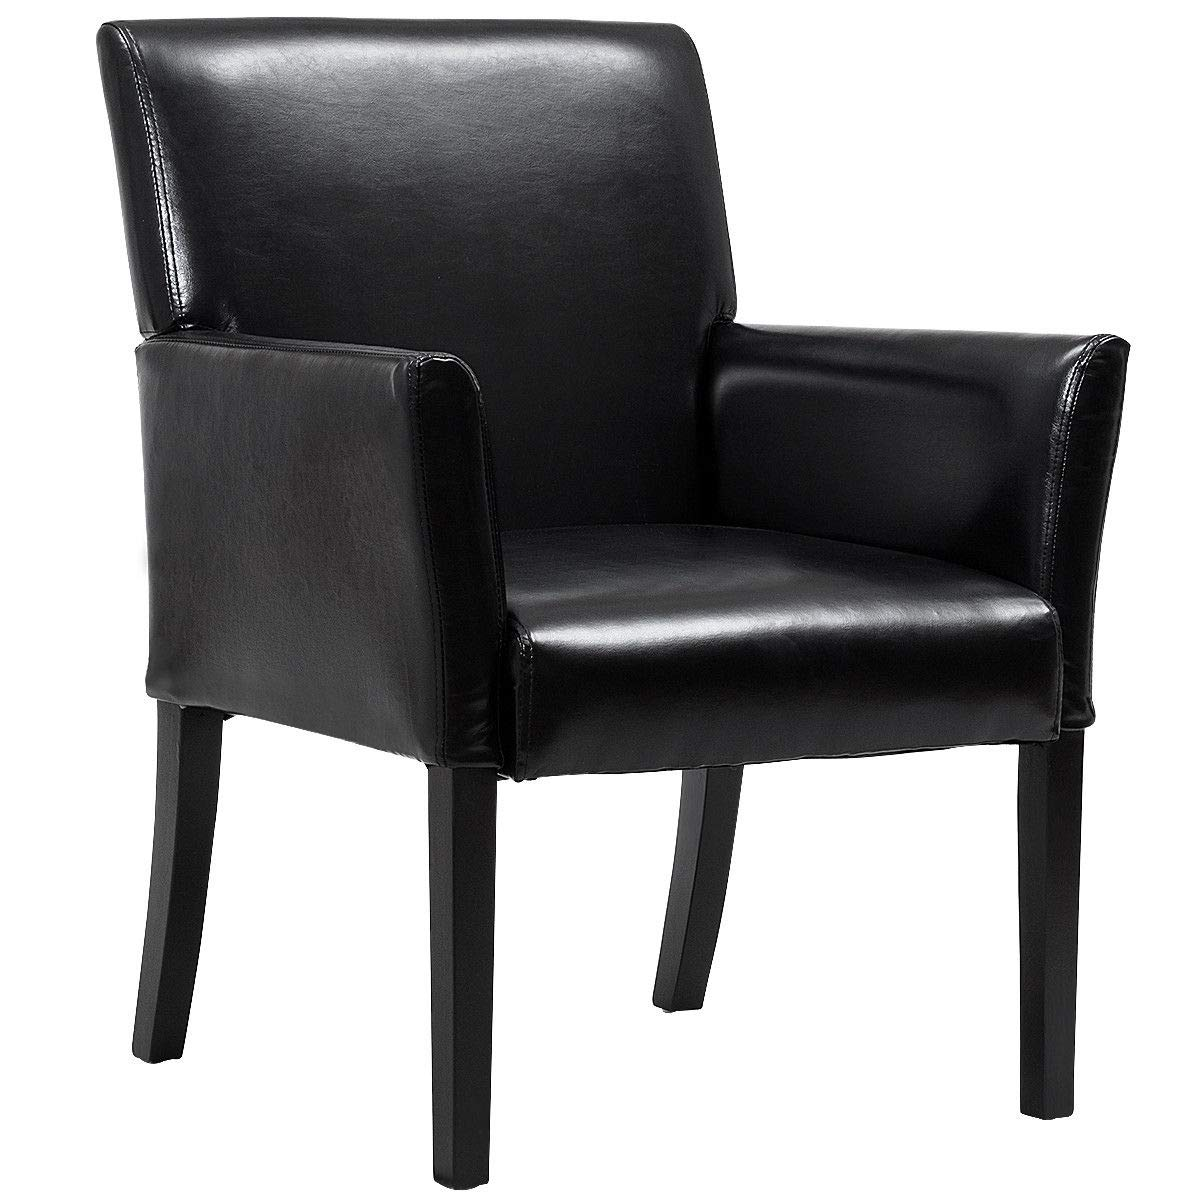 Brilliant Giantex Leather Reception Guest Chairs Set Office Executive Side Chair Padded Seat Ergonomic Mid Back Meeting Waiting Room Conference Office Guest Caraccident5 Cool Chair Designs And Ideas Caraccident5Info